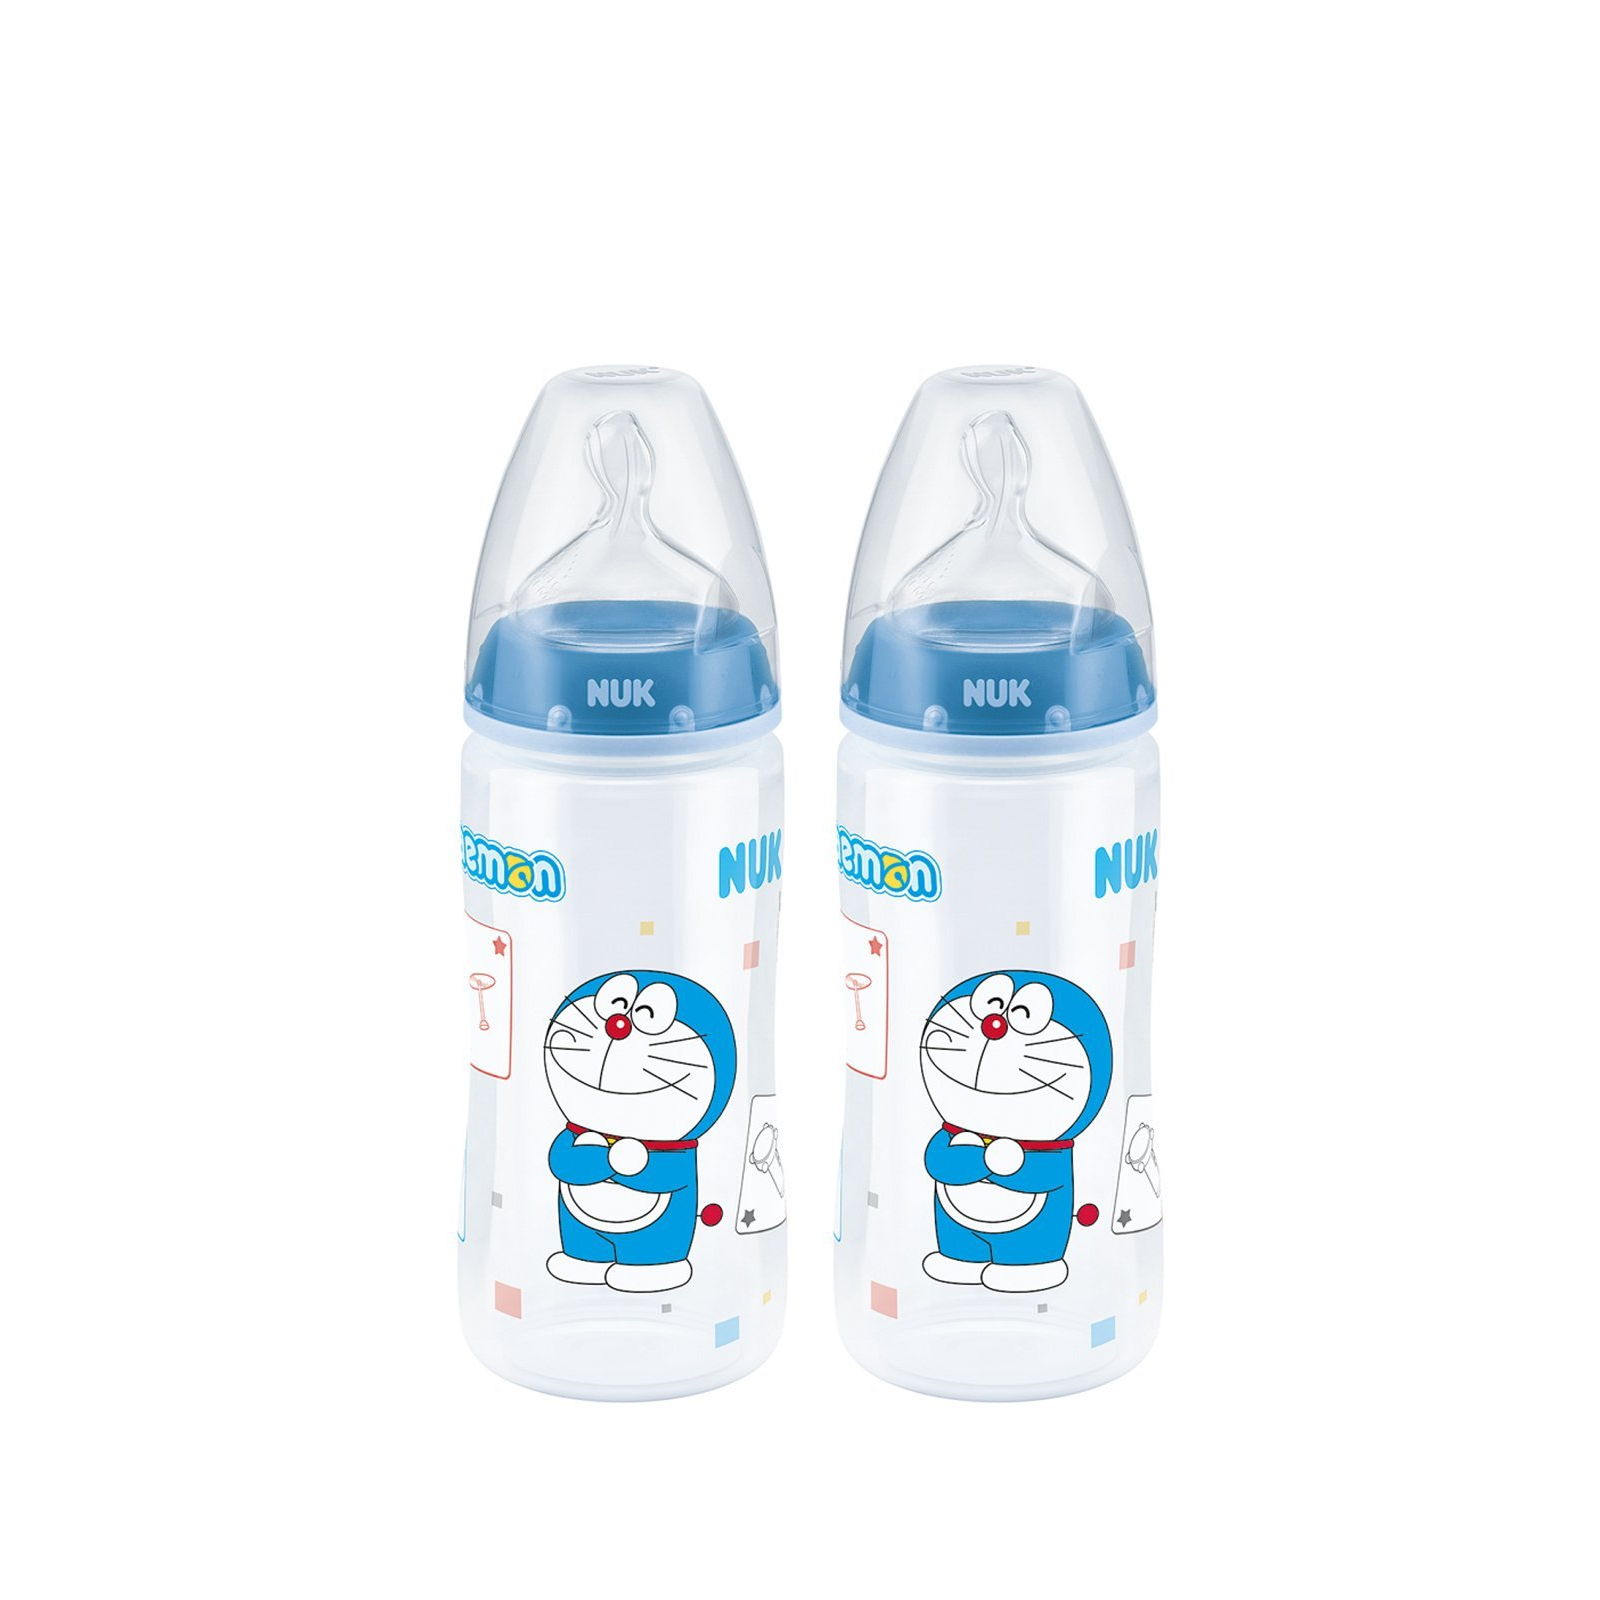 NUK Doraemon Bottle 300ml x 2 + Free Bottle Cleanser 950ml